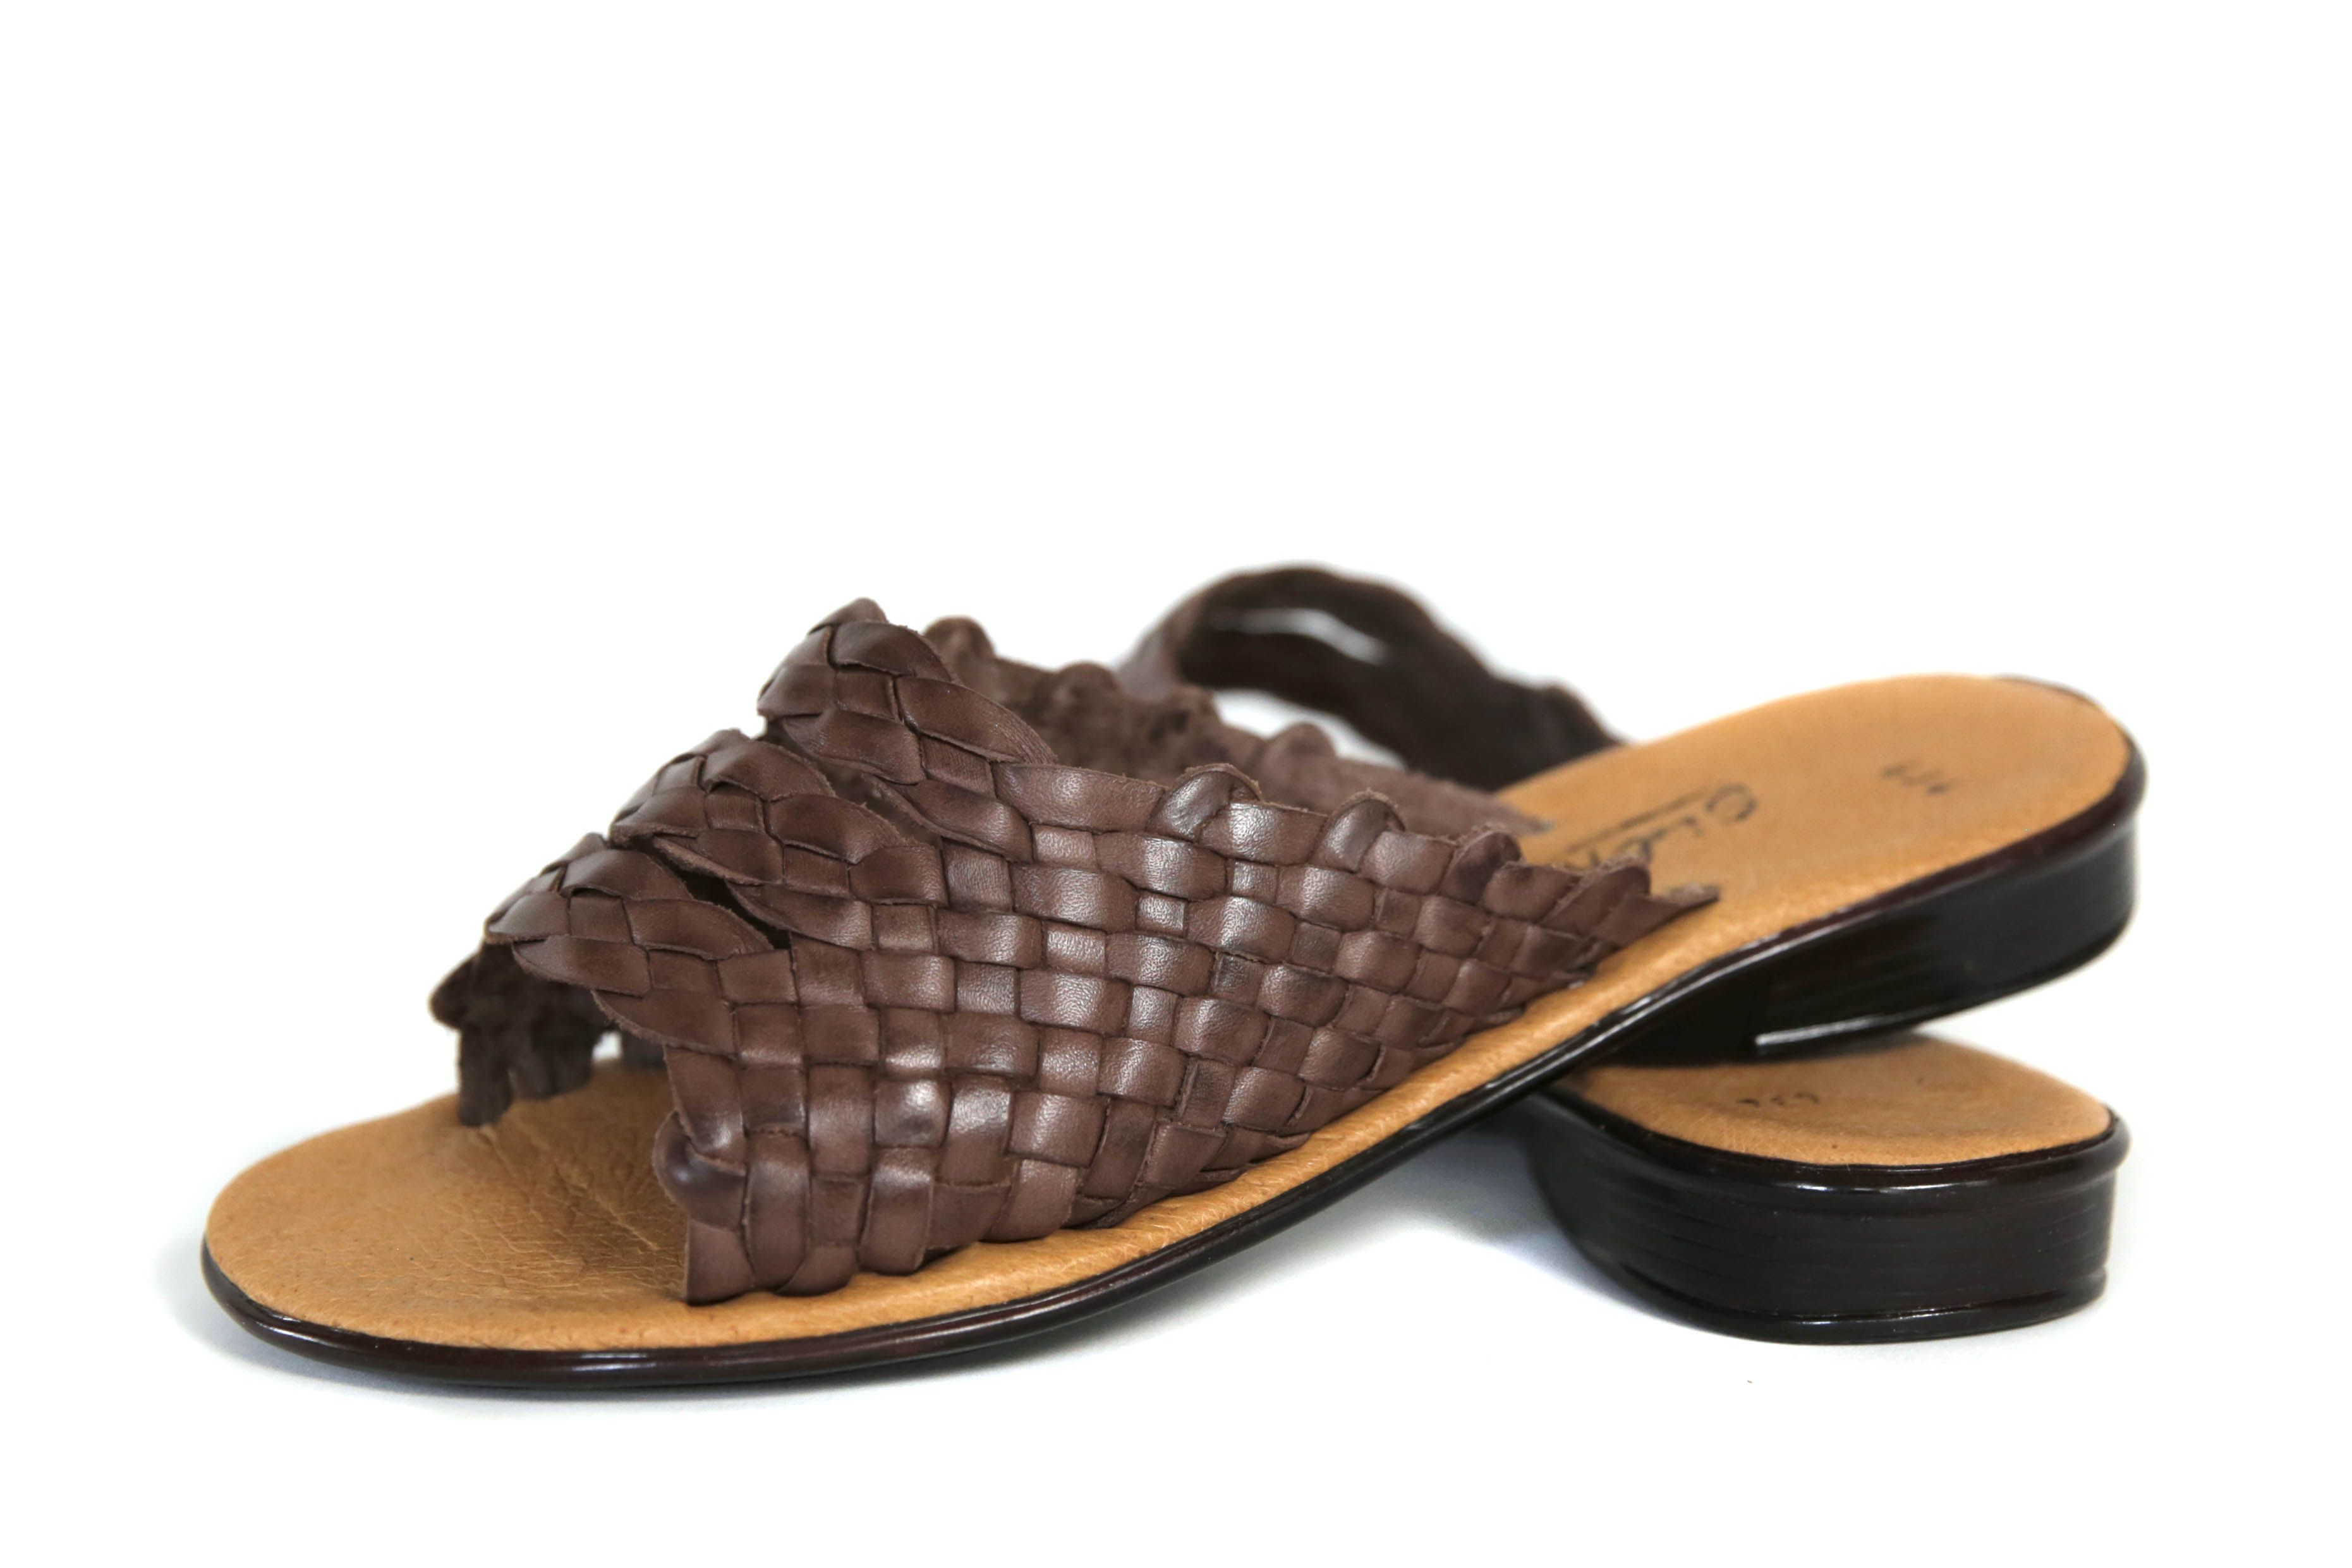 6588e3417a86d Women's Slip-on Huarache Sandals - Brown in 2019 | Shop our Items ...